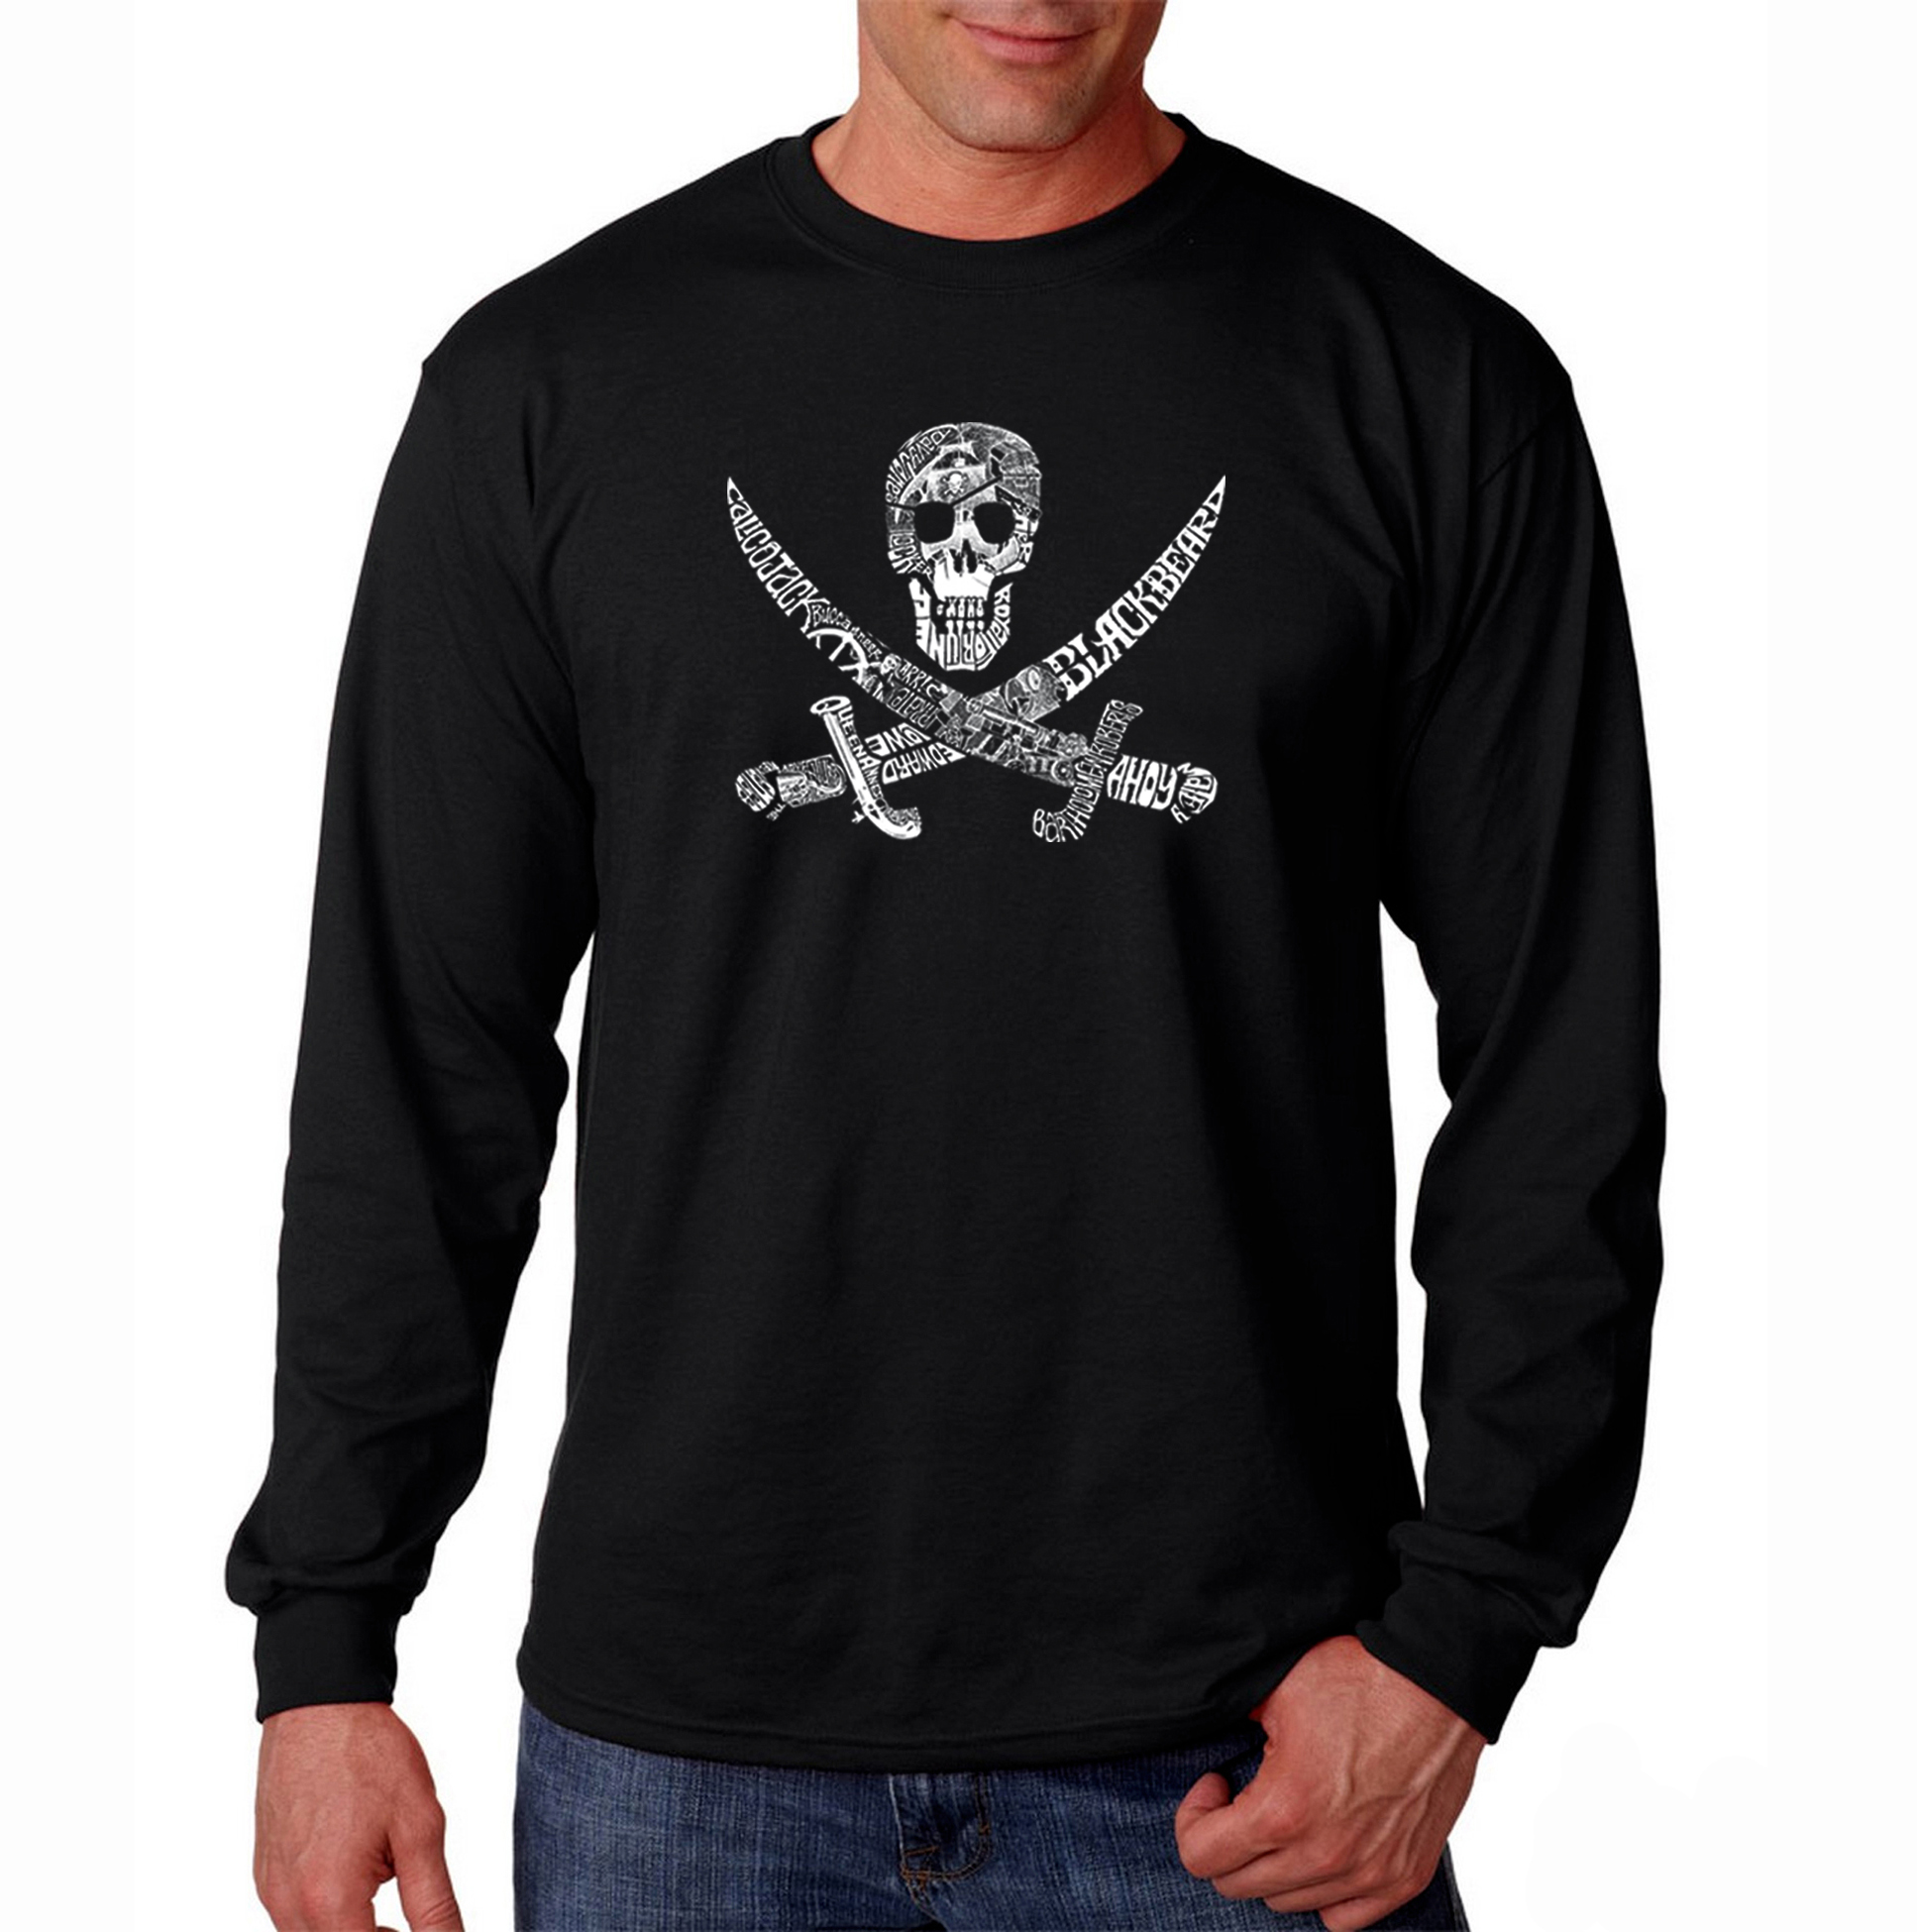 Men's Big & Tall Word Art Long Sleeve T-Shirt - Pirate Captains, Ships and Imagery